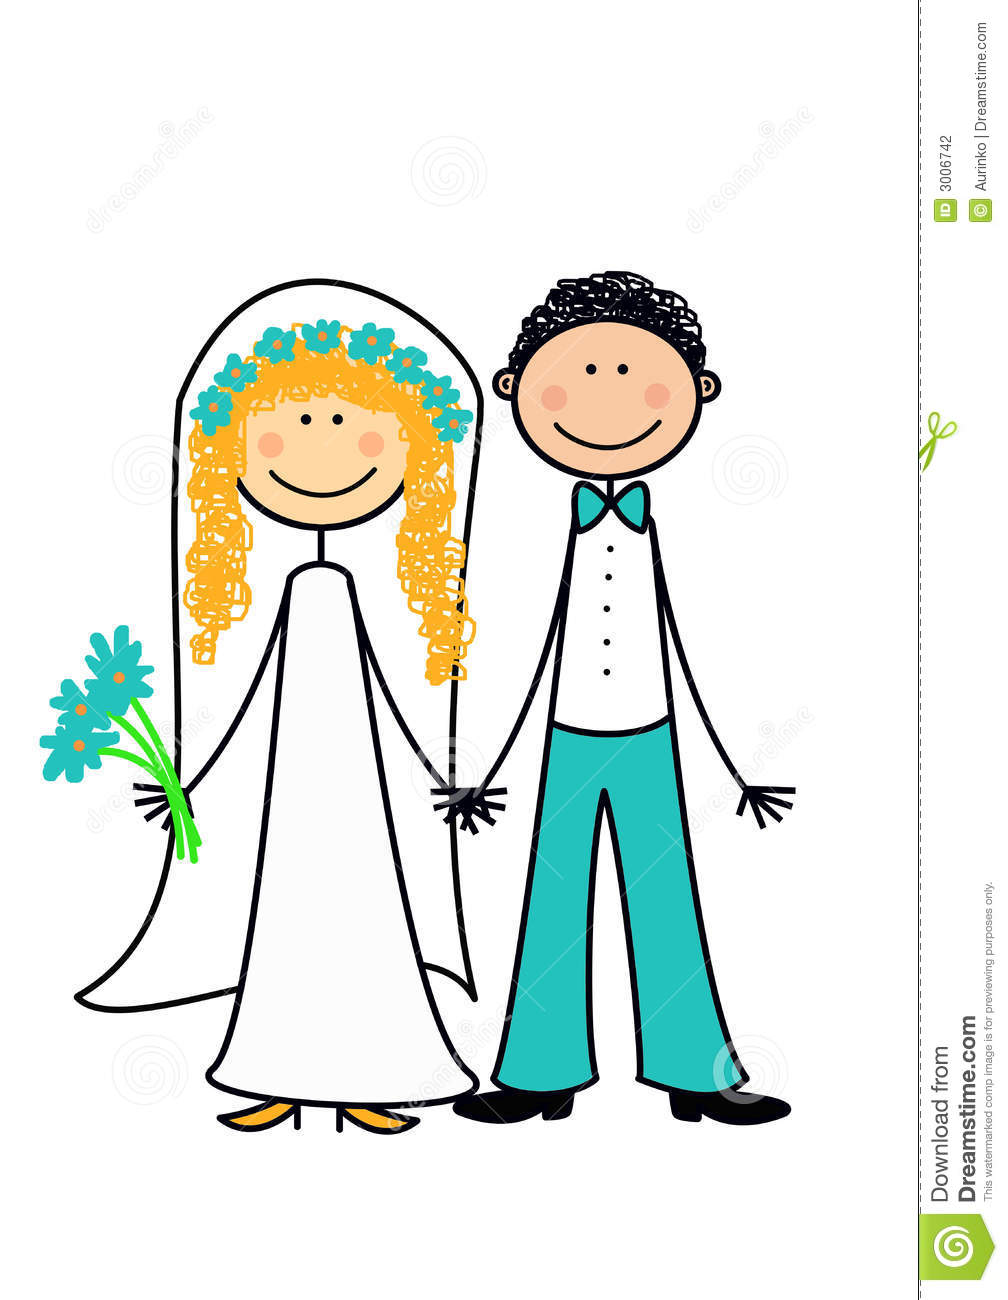 Married couple clipart - .